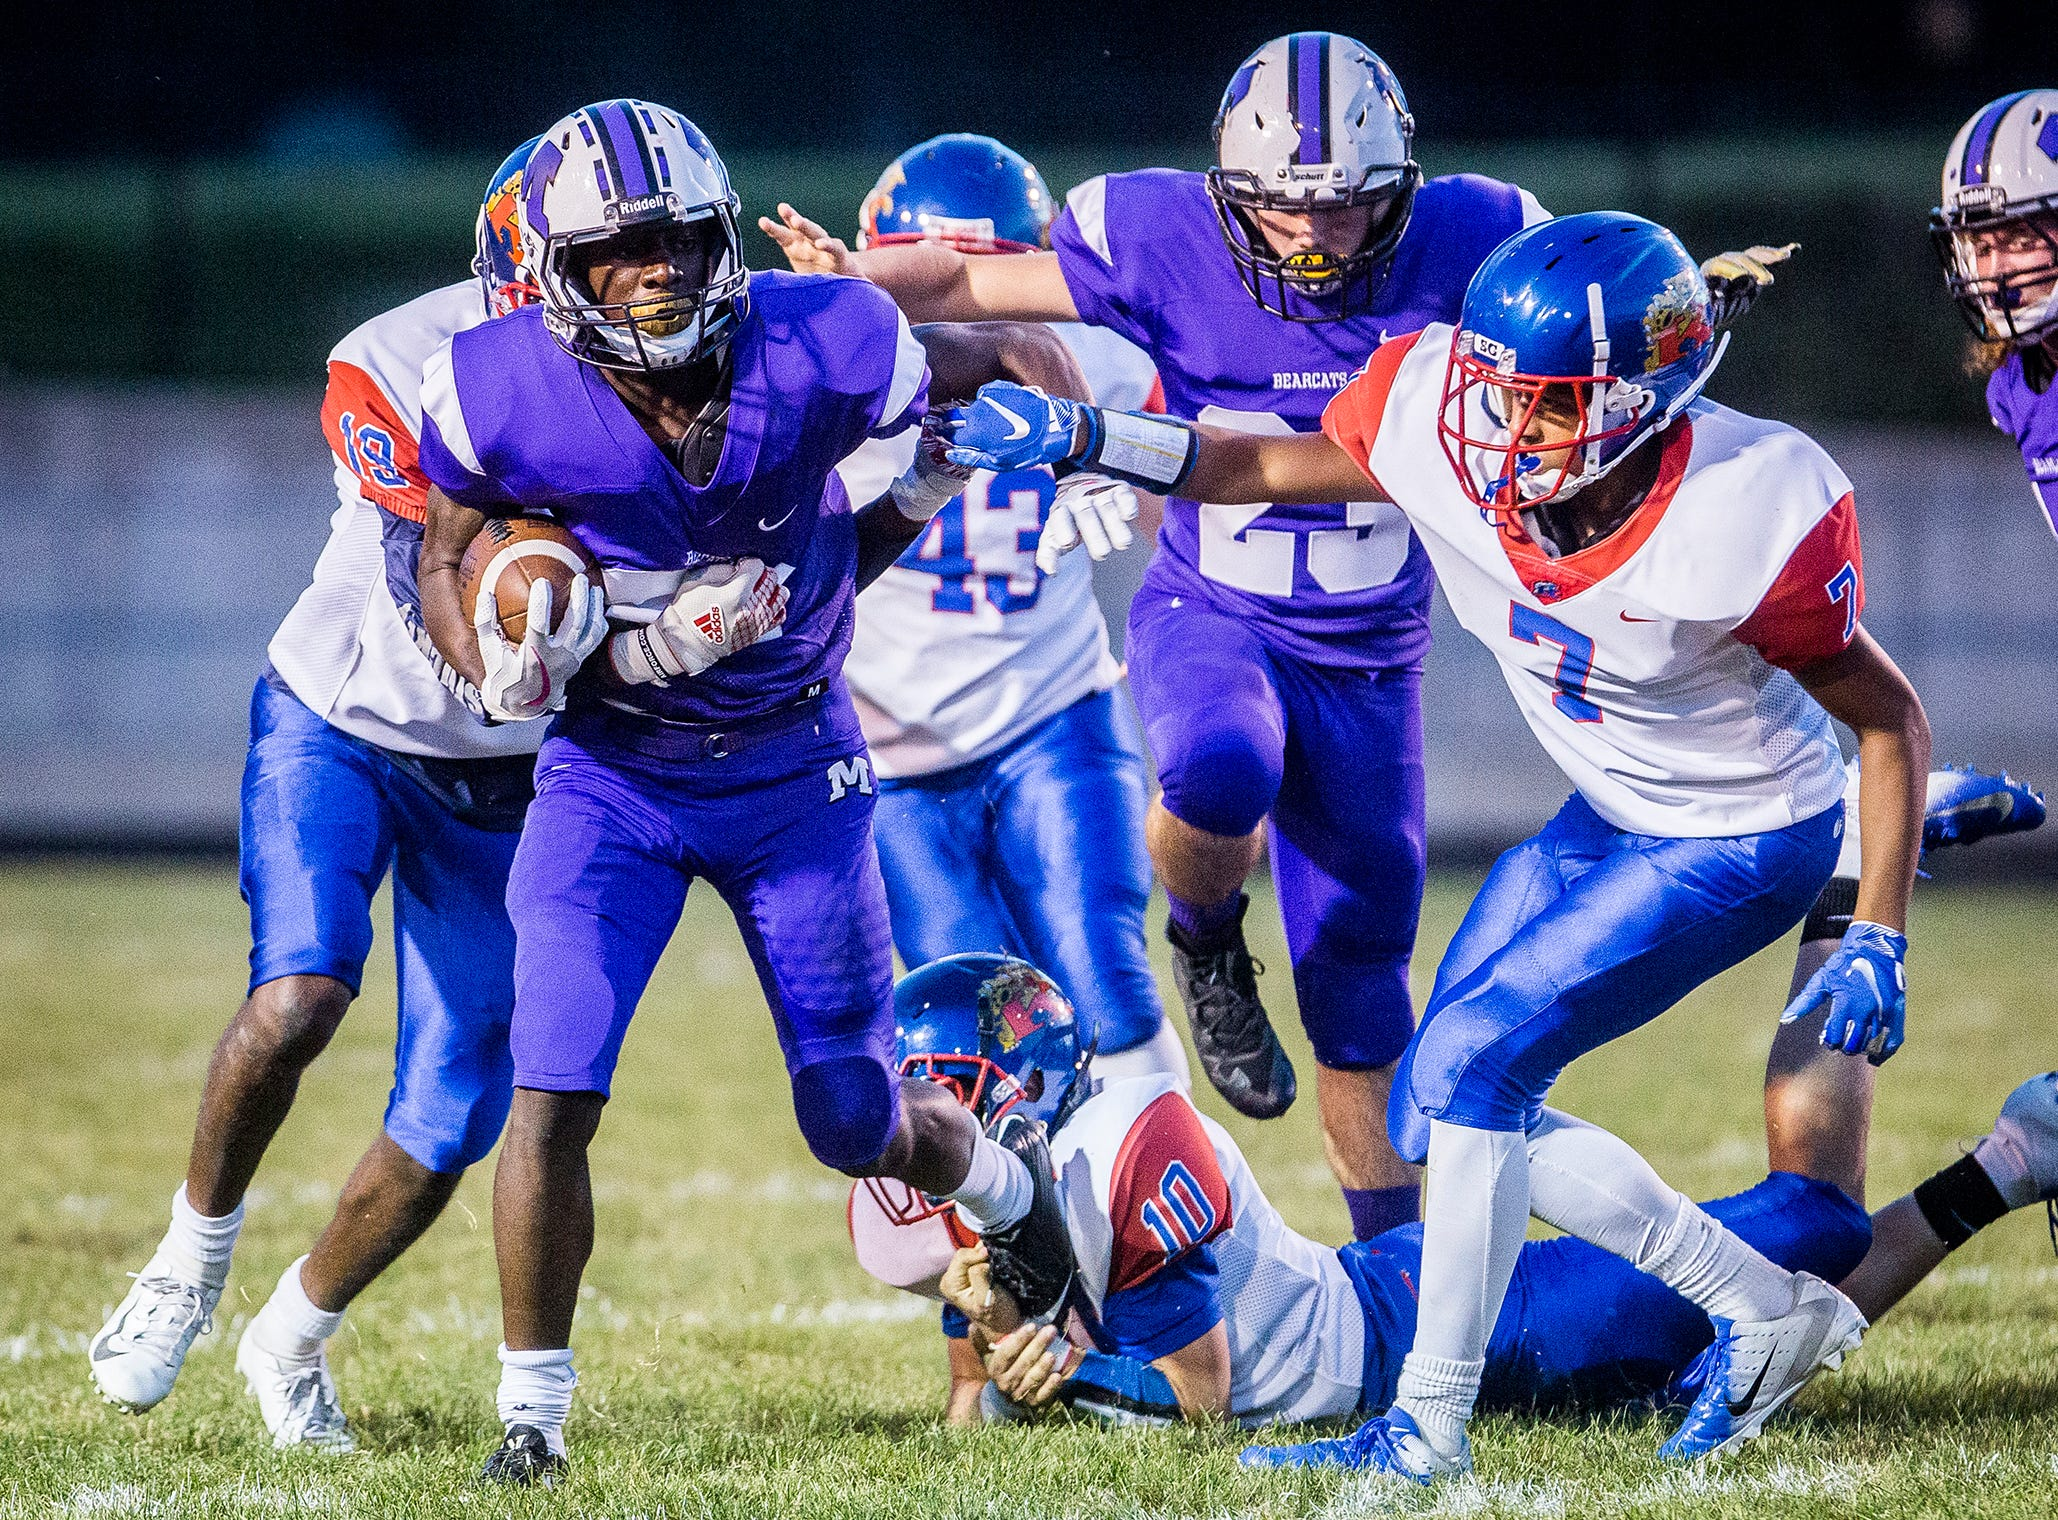 Central faces off against Kokomo during their game at Central Friday, Sept. 21, 2018.